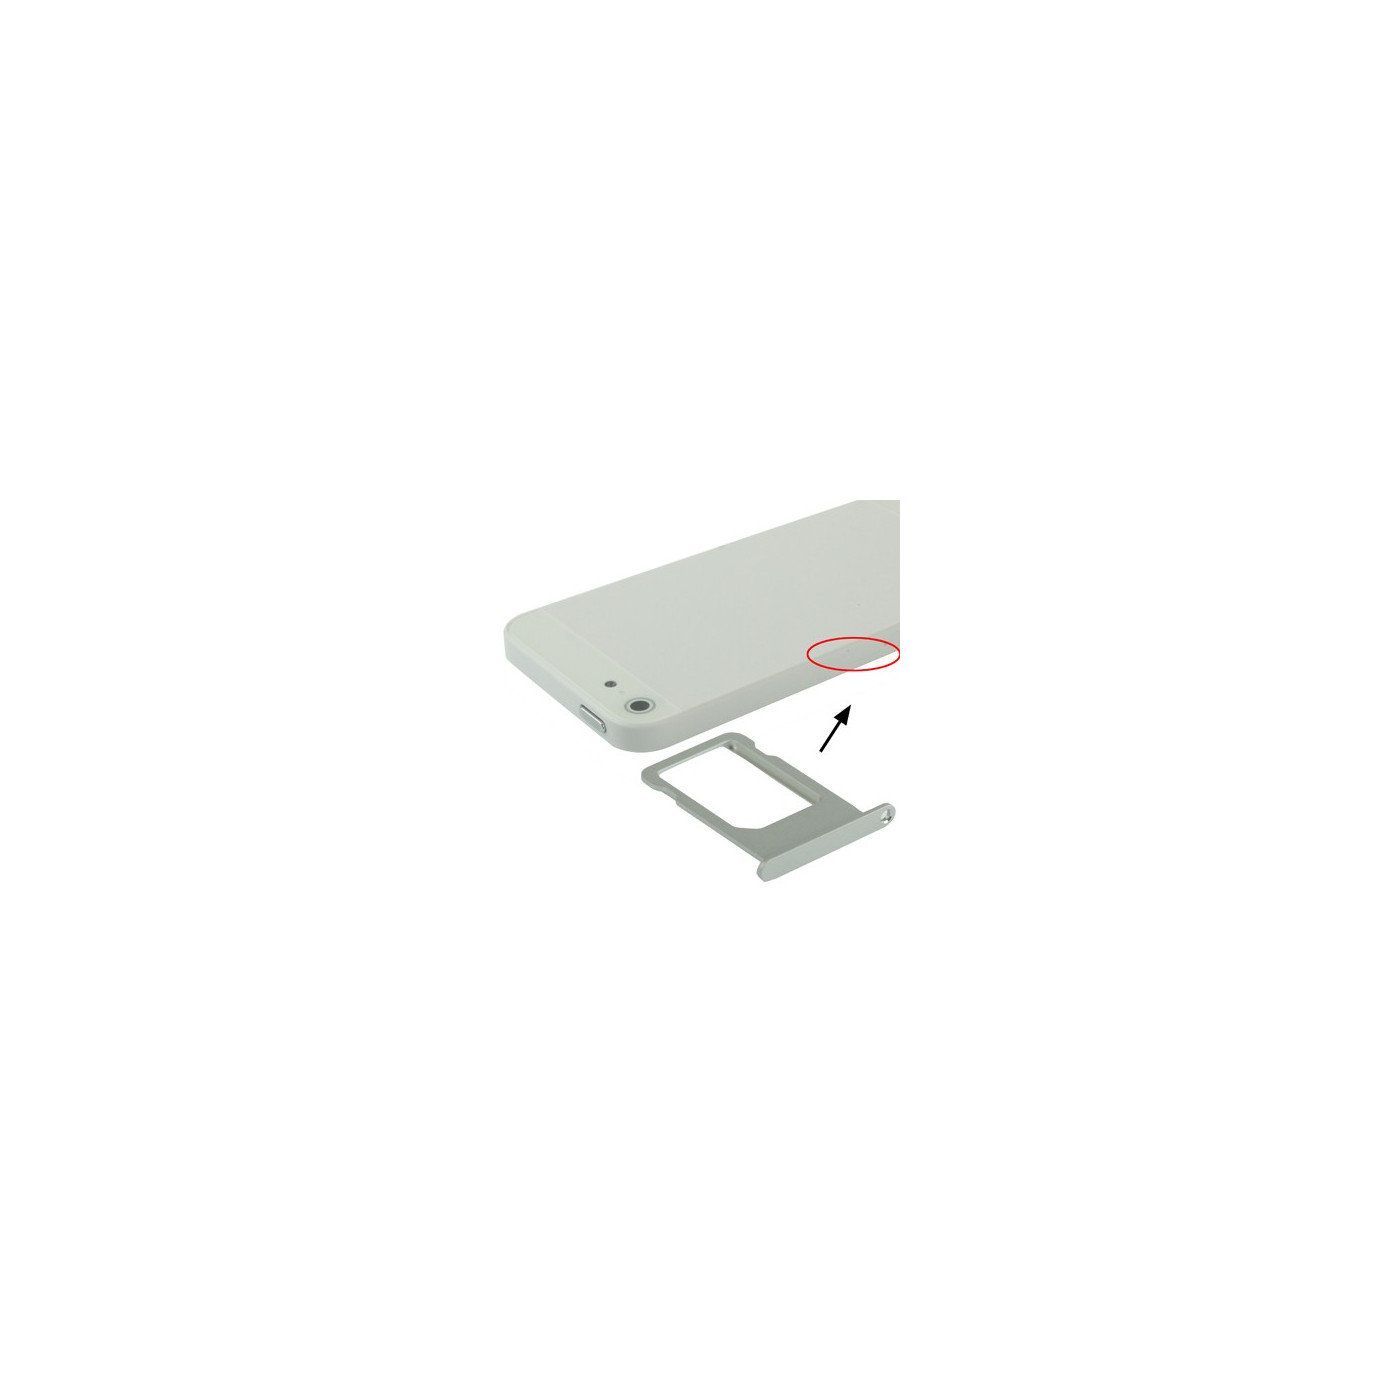 PORT SIM CARD SLOT SLIDE SILVER iPhone 5 TROLLEY TRAY REPLACEMENT